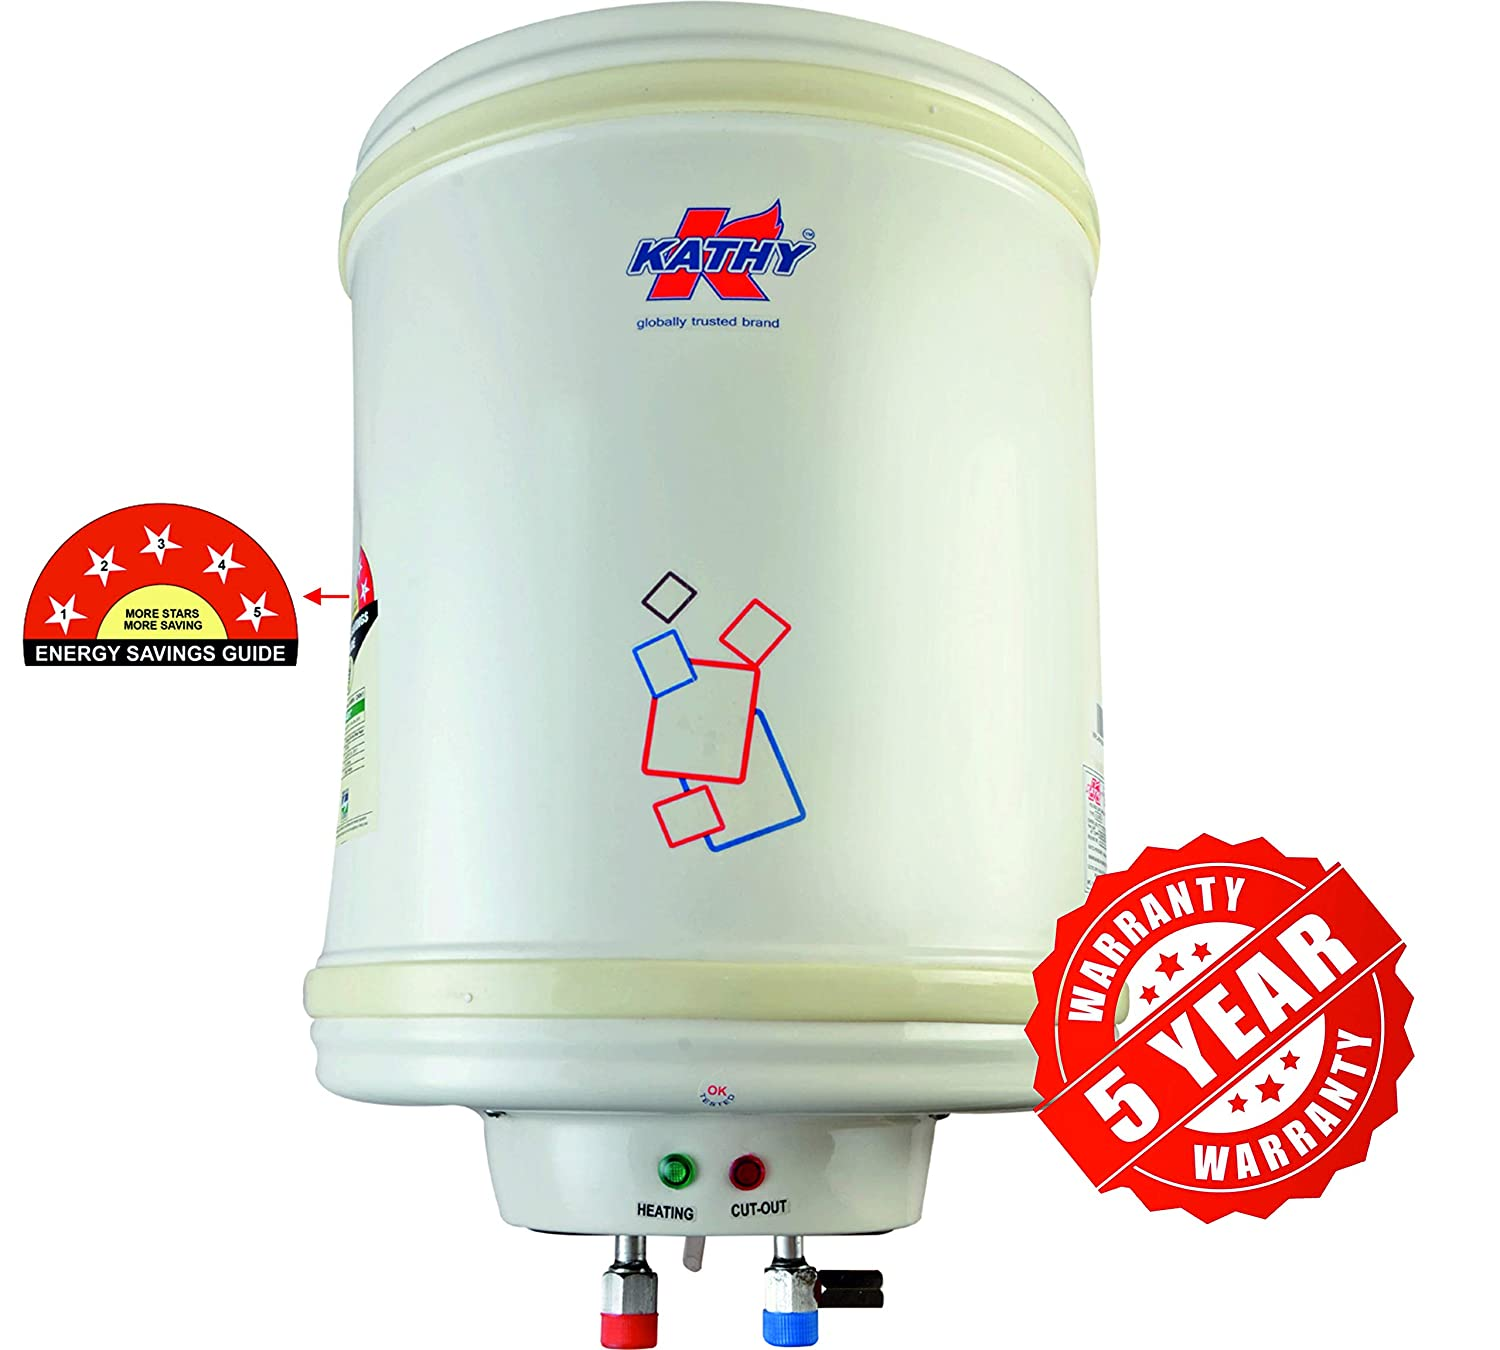 Kathy Metal 25 Litre Stainless Steel Electric Water Heater 5 Star Mark